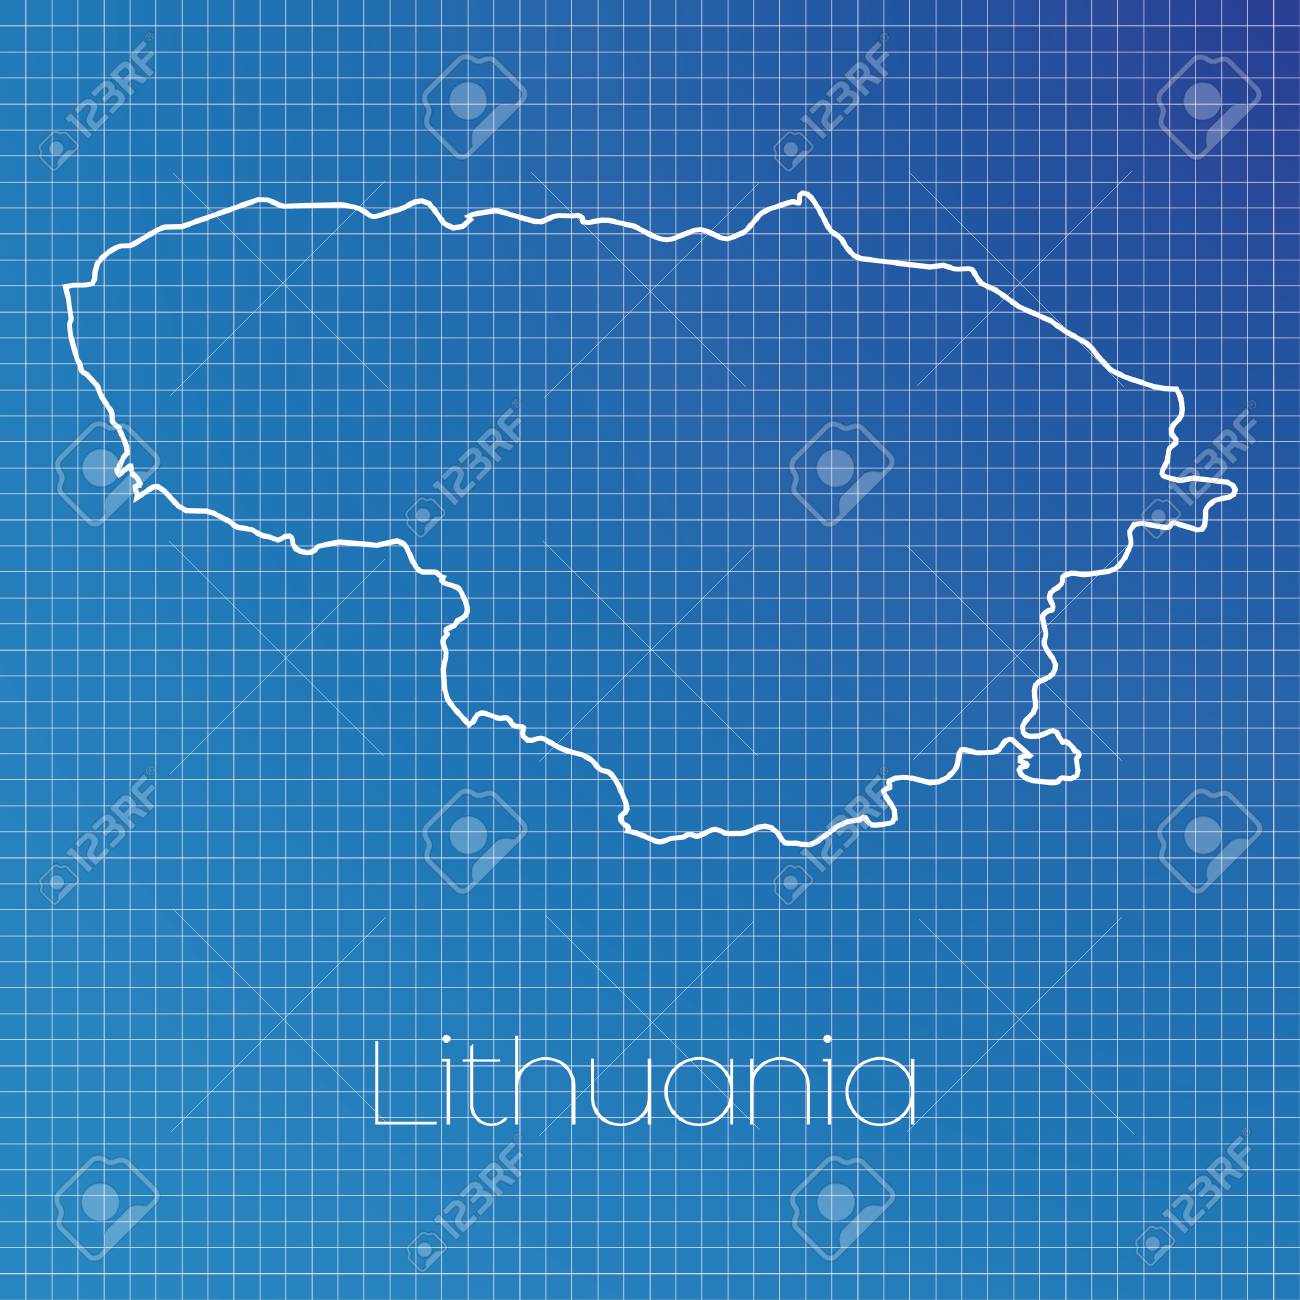 A Schematic Outline Of The Country Of Lithuania Stock Photo, Picture ...